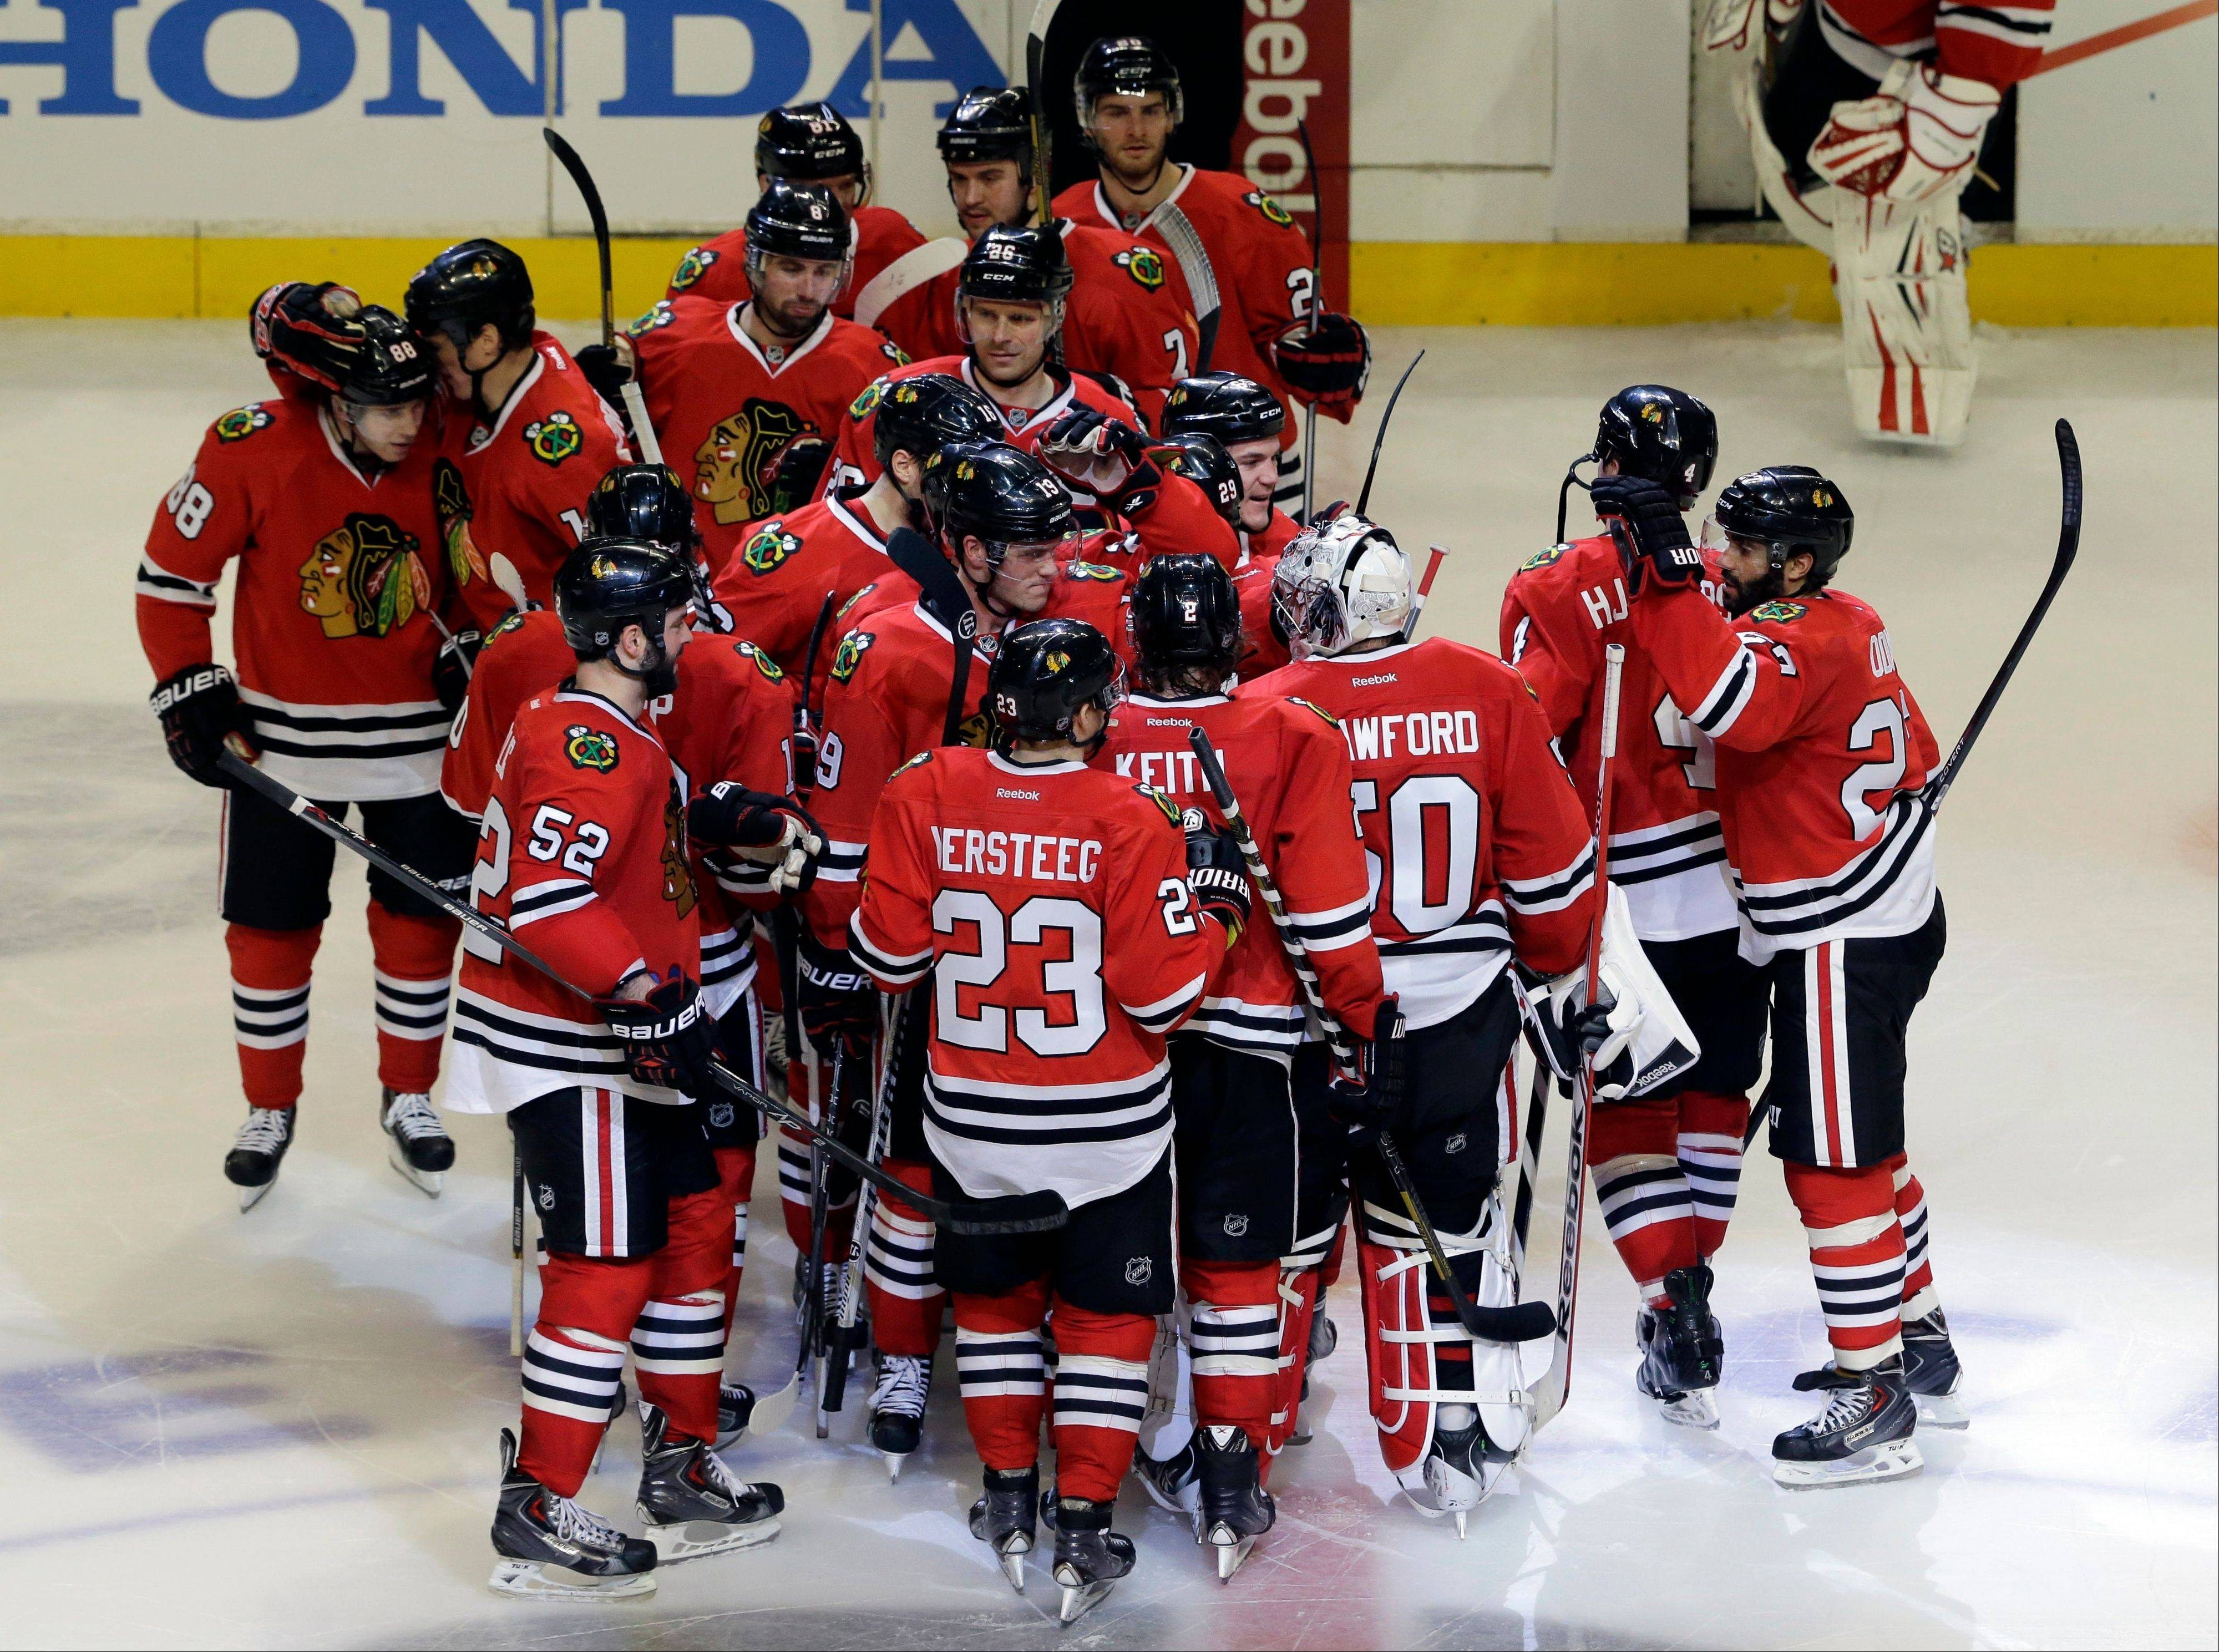 Blackhawks goalie Corey Crawford (50) celebrates with teammates after the Blackhawks defeated the Boston Bruins 3-2 following their shootout period of an NHL hockey game in Chicago, Sunday, Jan. 19, 2014.